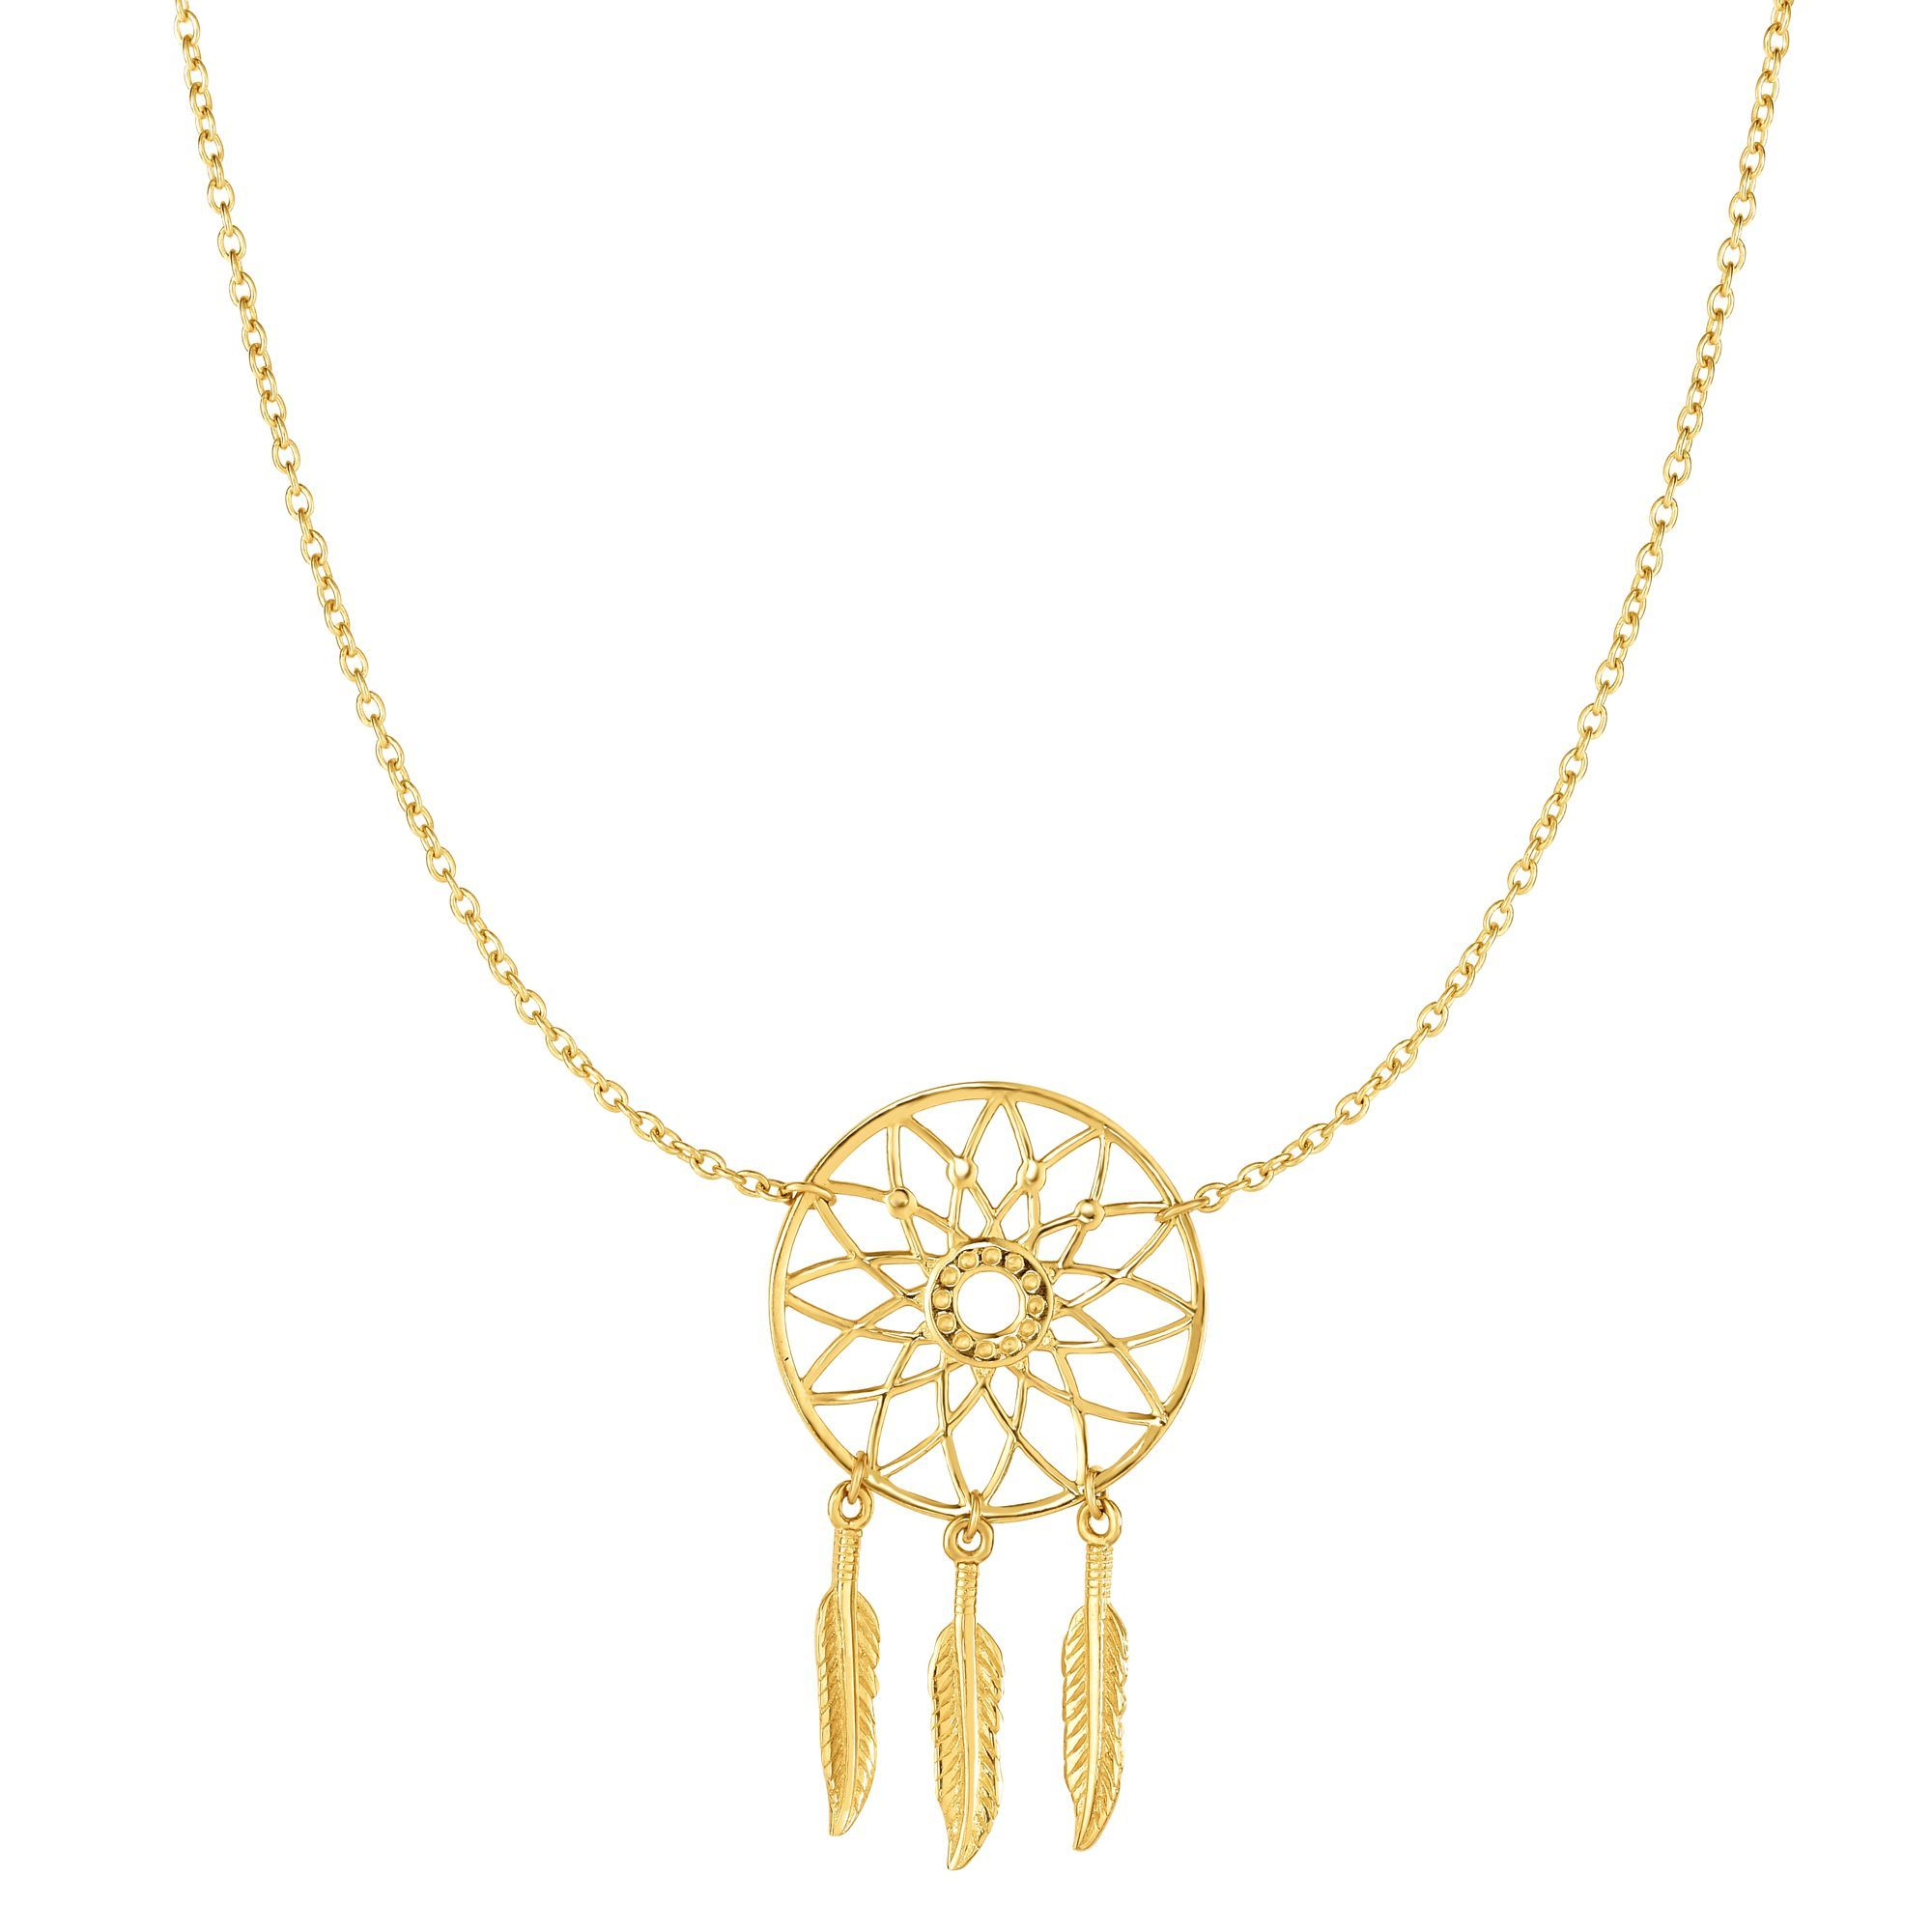 14 Karat Yellow Gold Detailed Dream Catcher Necklace